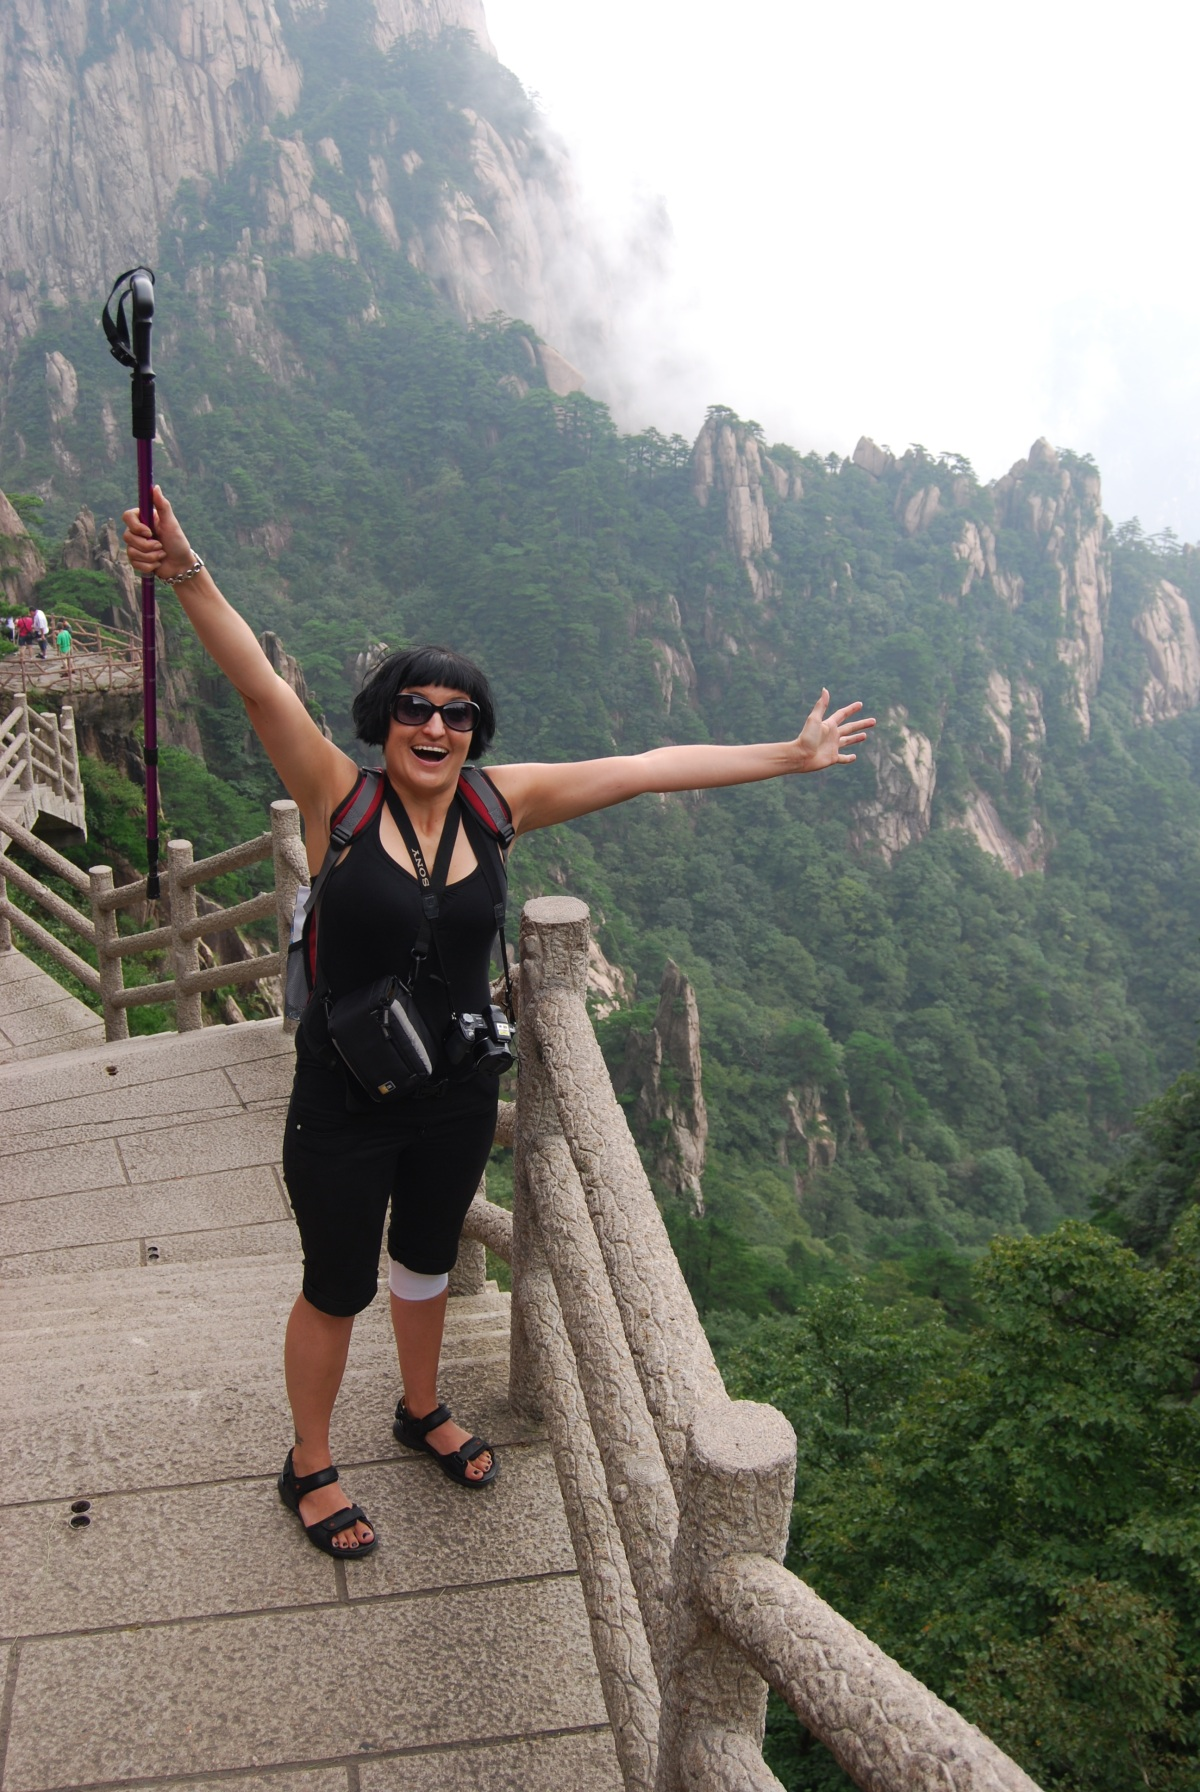 Hiking  the famous Yellow mountain of China was breathtakingly fabulous but physicallytorturous!!